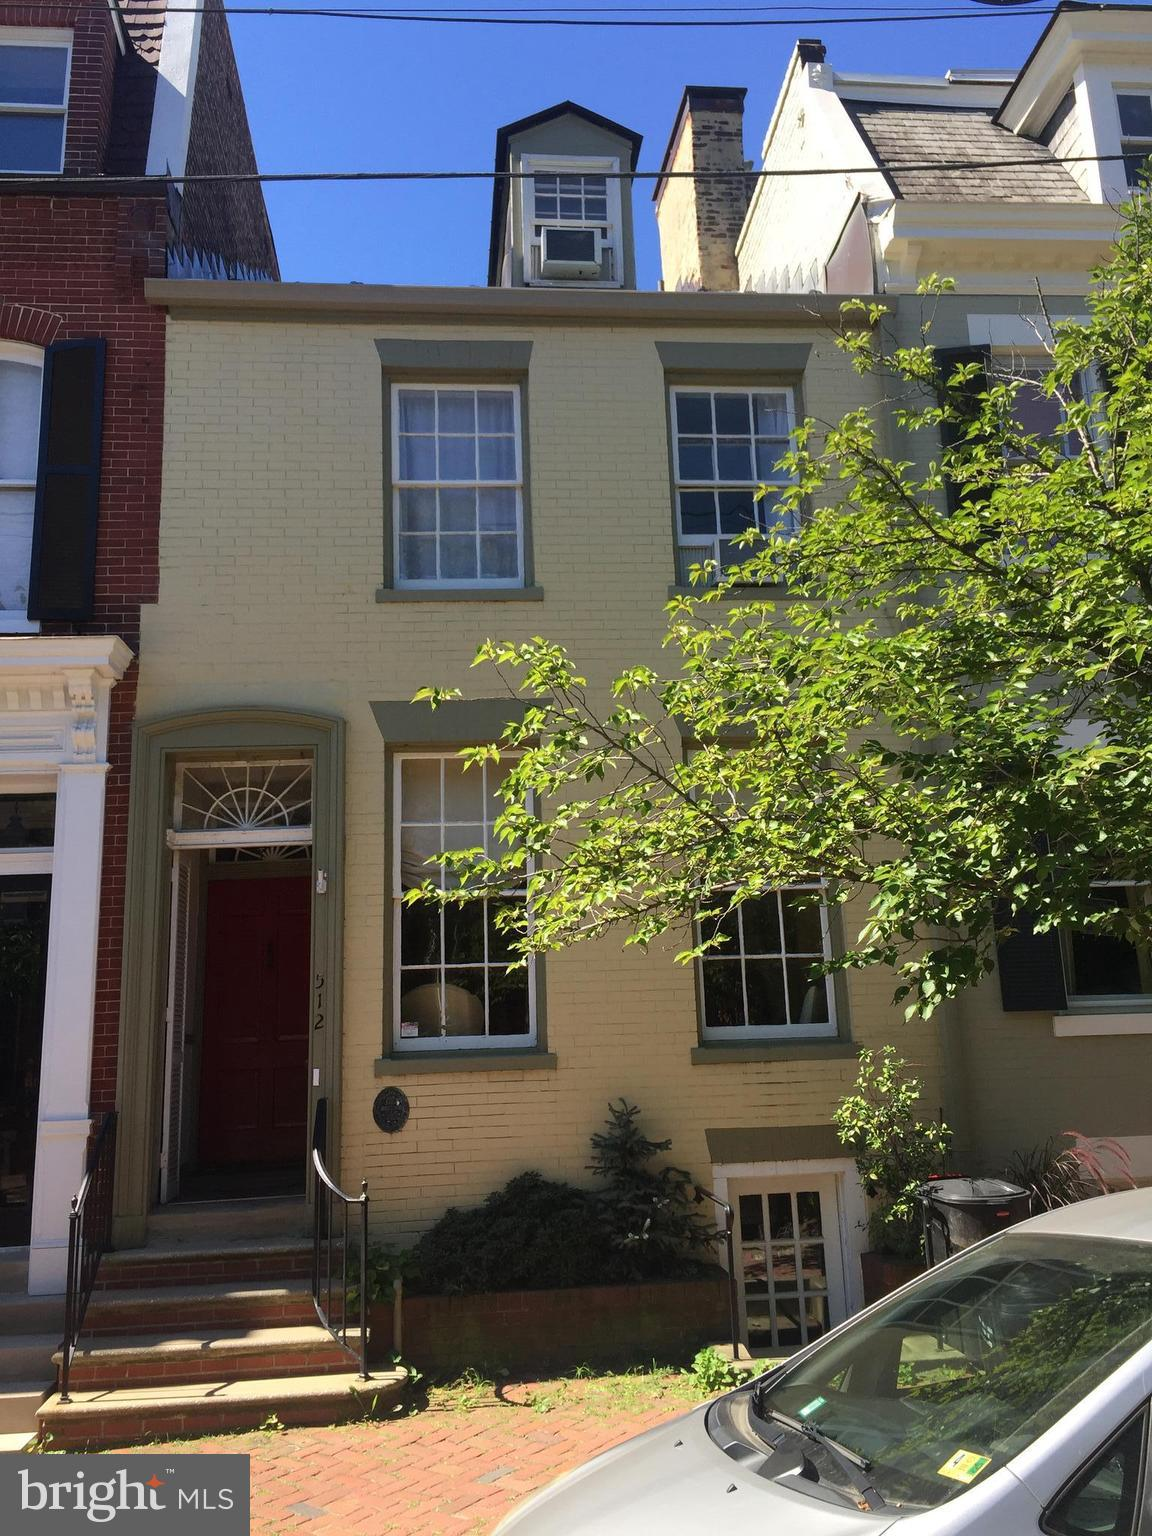 This historic townhouse in the heart of OLD TOWN is on the market for the first time in over 50 years. Just one block from King St. & 4 blocks to the river. Currently sold AS IS and with 2988 sq ft of rehab potential. Entire house covered entirely with wood floors and has three beautiful fireplaces.  Bring your clients who want  their own input on a restoration project. Show and sell.